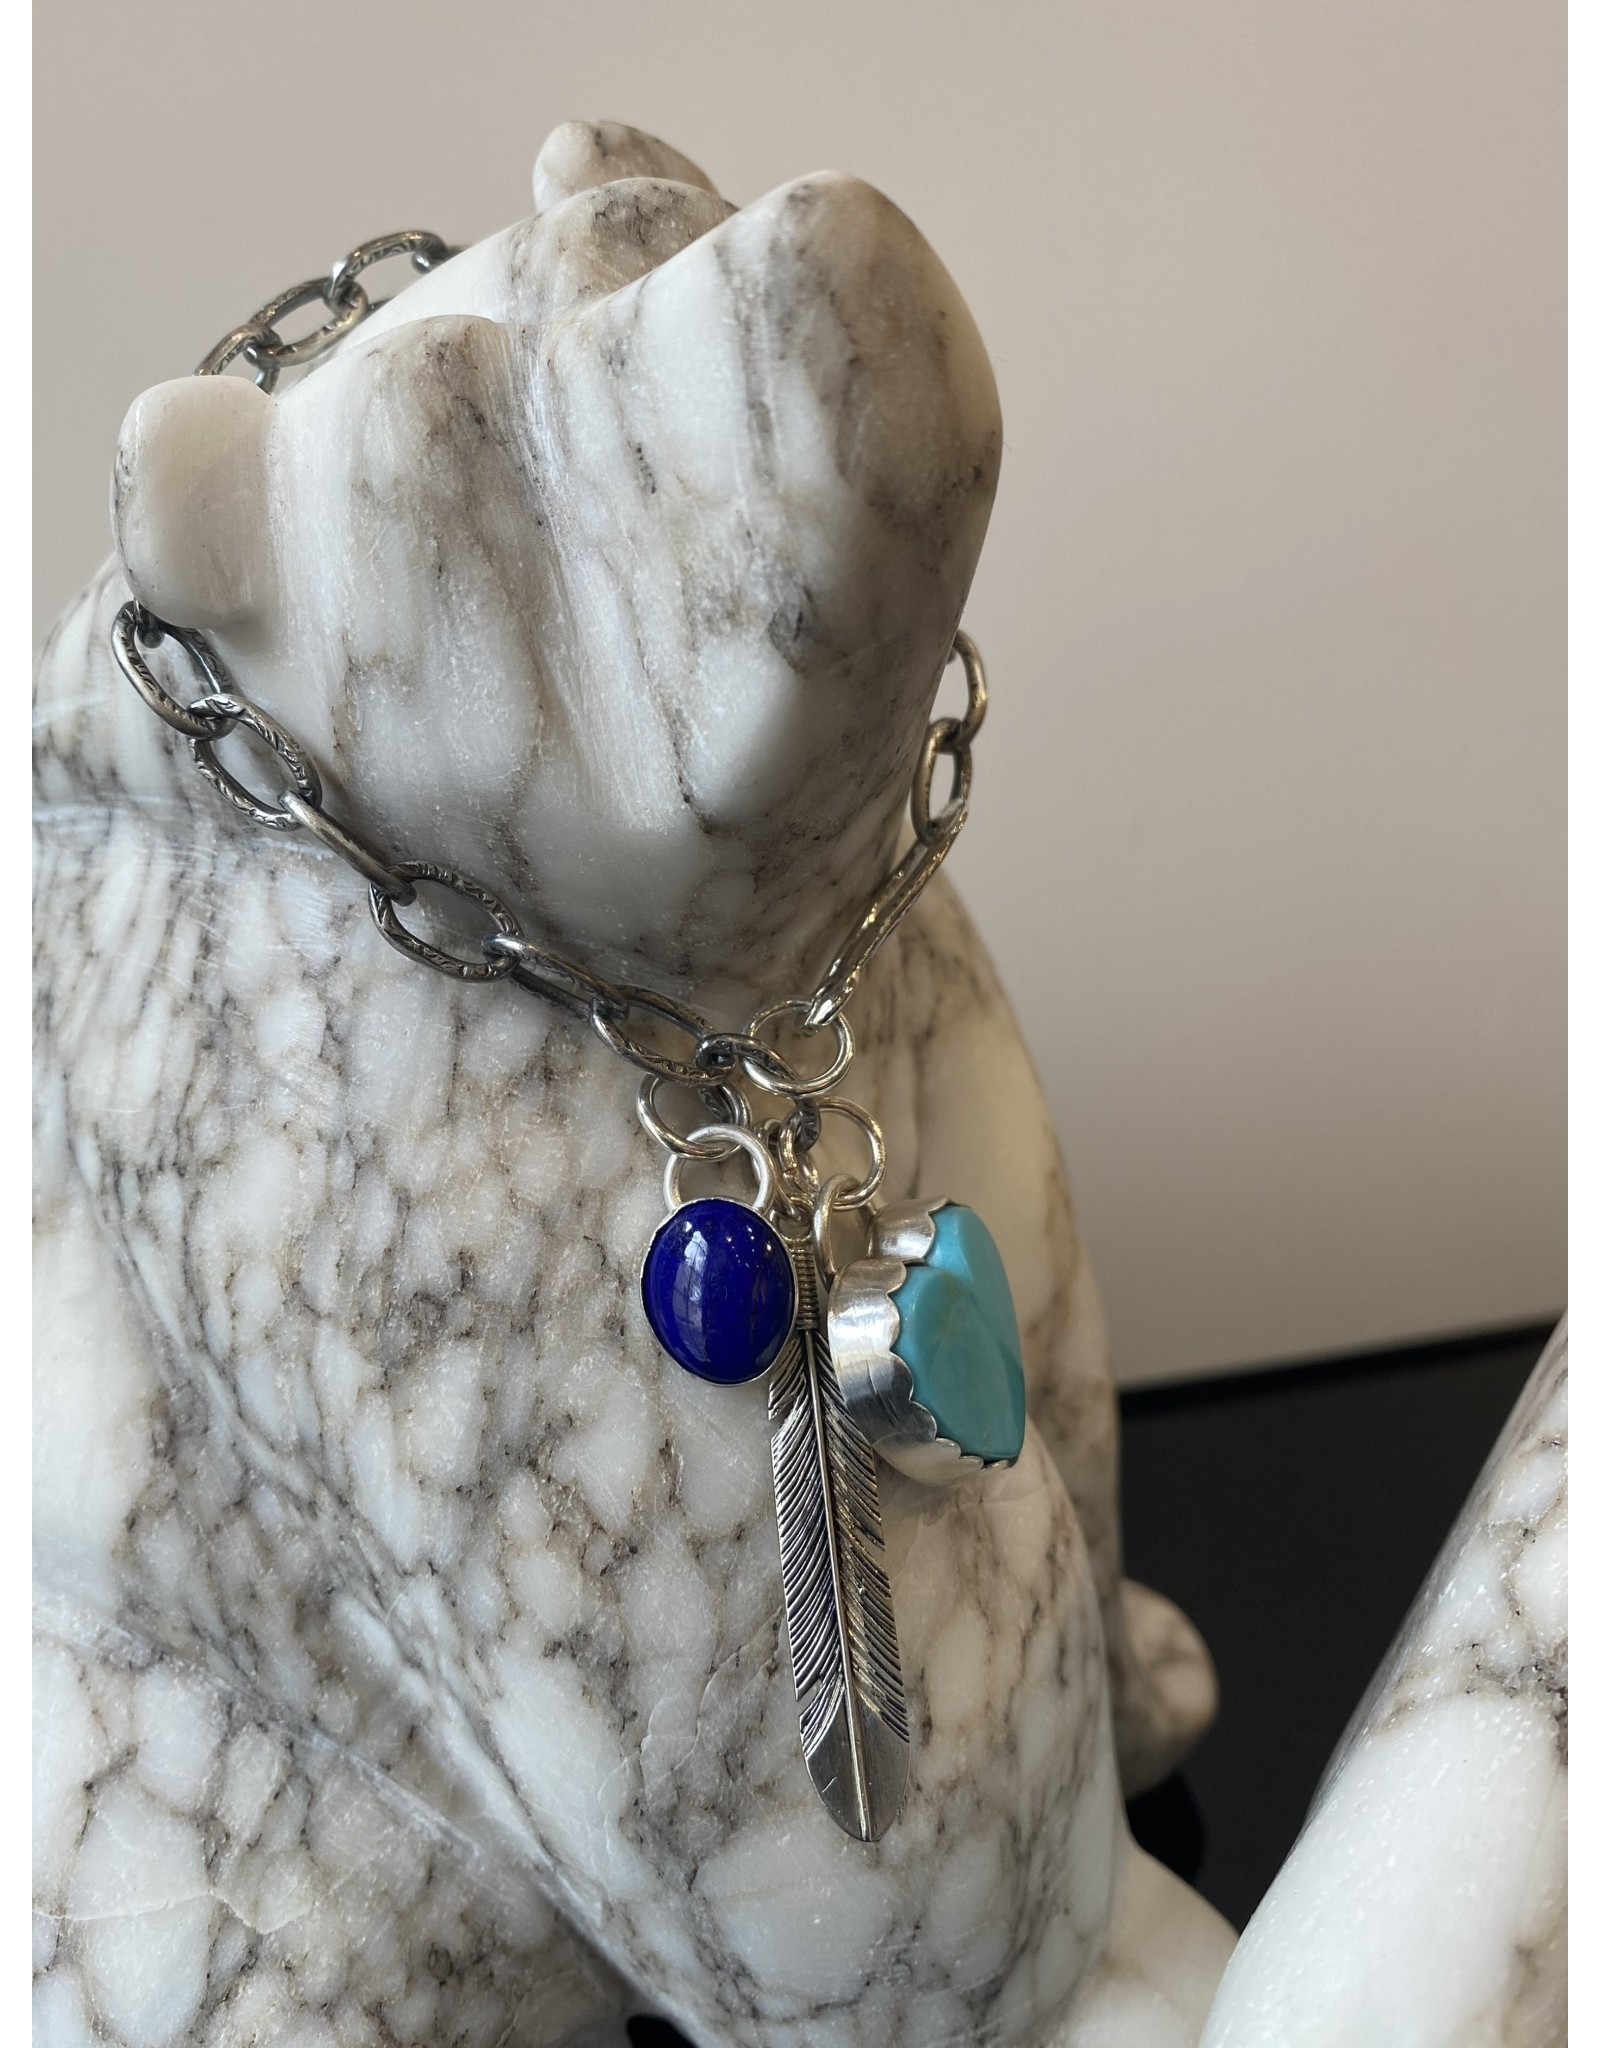 Annette Colby - Jeweler Kingman Turquoise Heart, Lapis Feather, Link Bracelet - Annette Colby